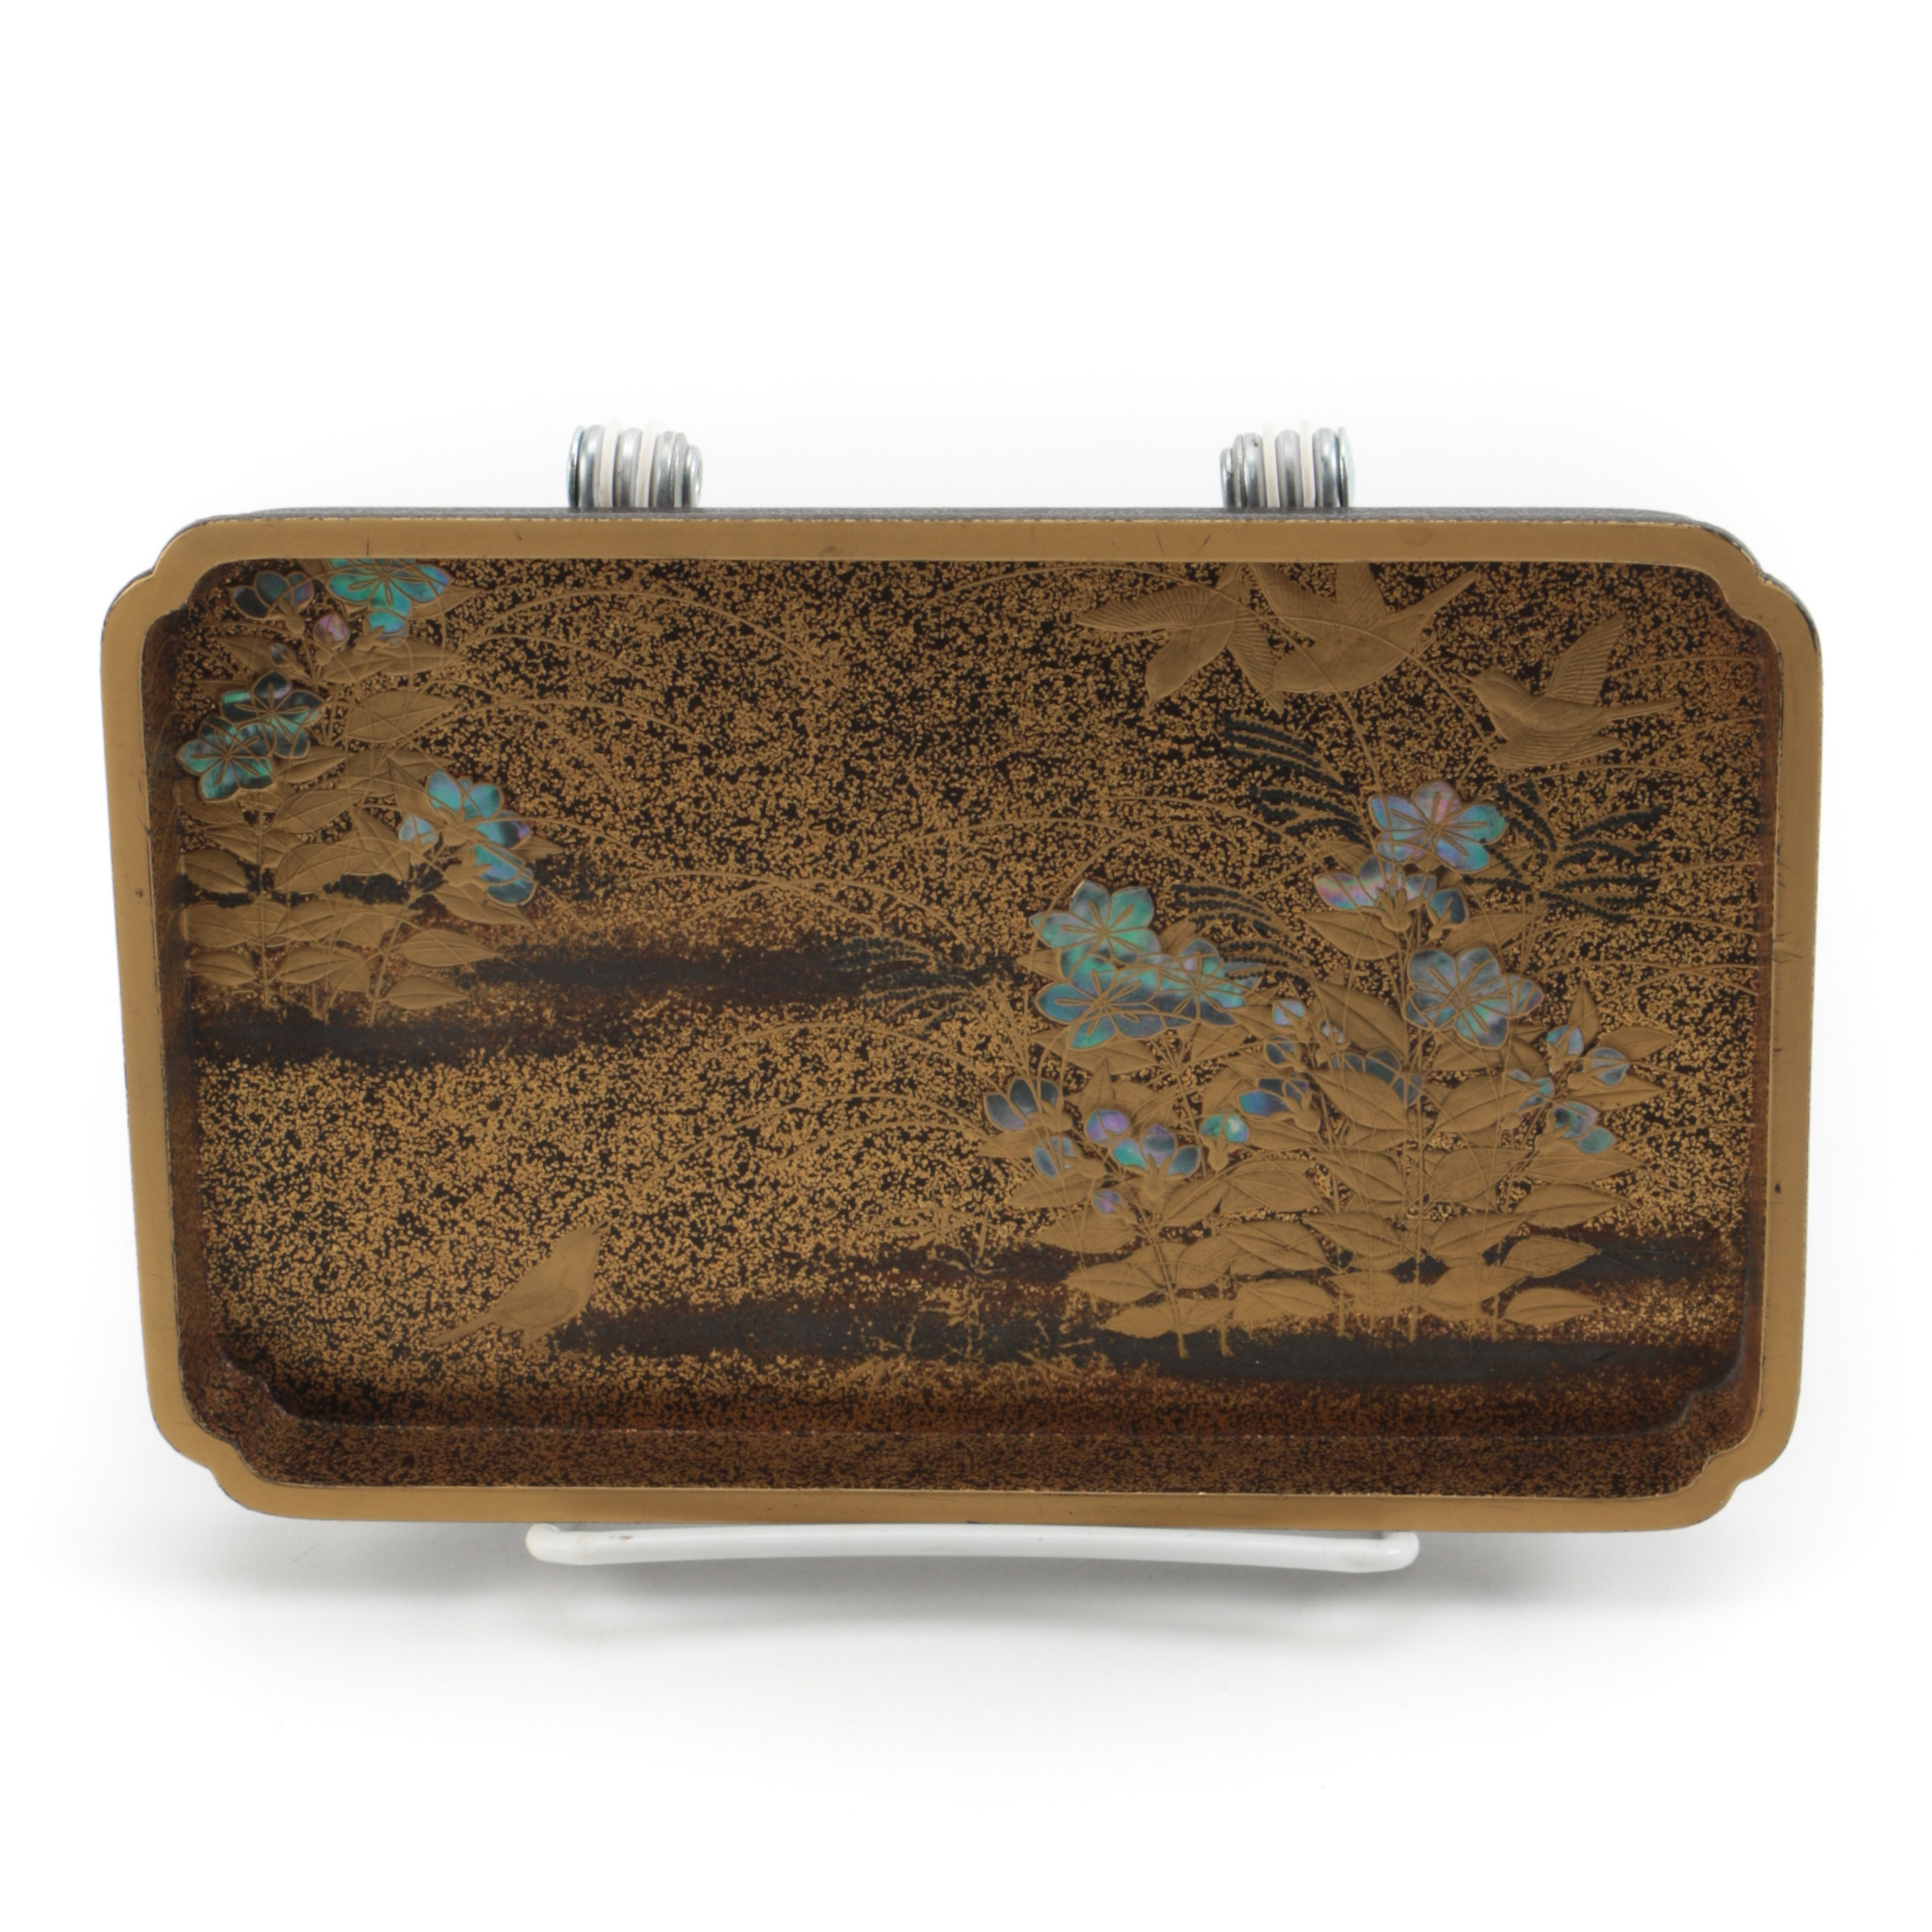 Japanese Lacquer Tray With Mother of Pearl Inlay